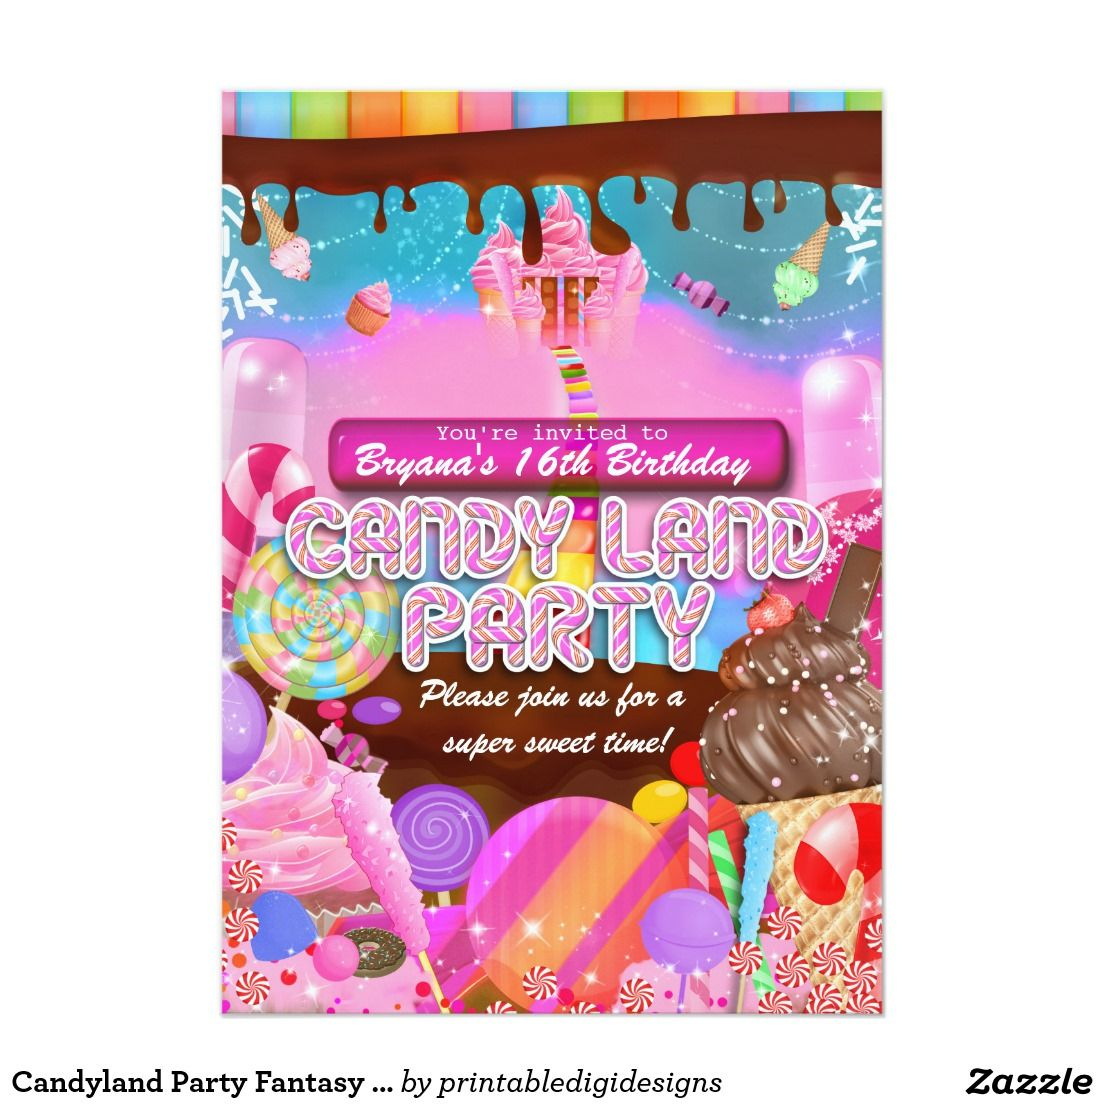 Candyland Party Fantasy Candy Cupcakes Flyer Sweet 16